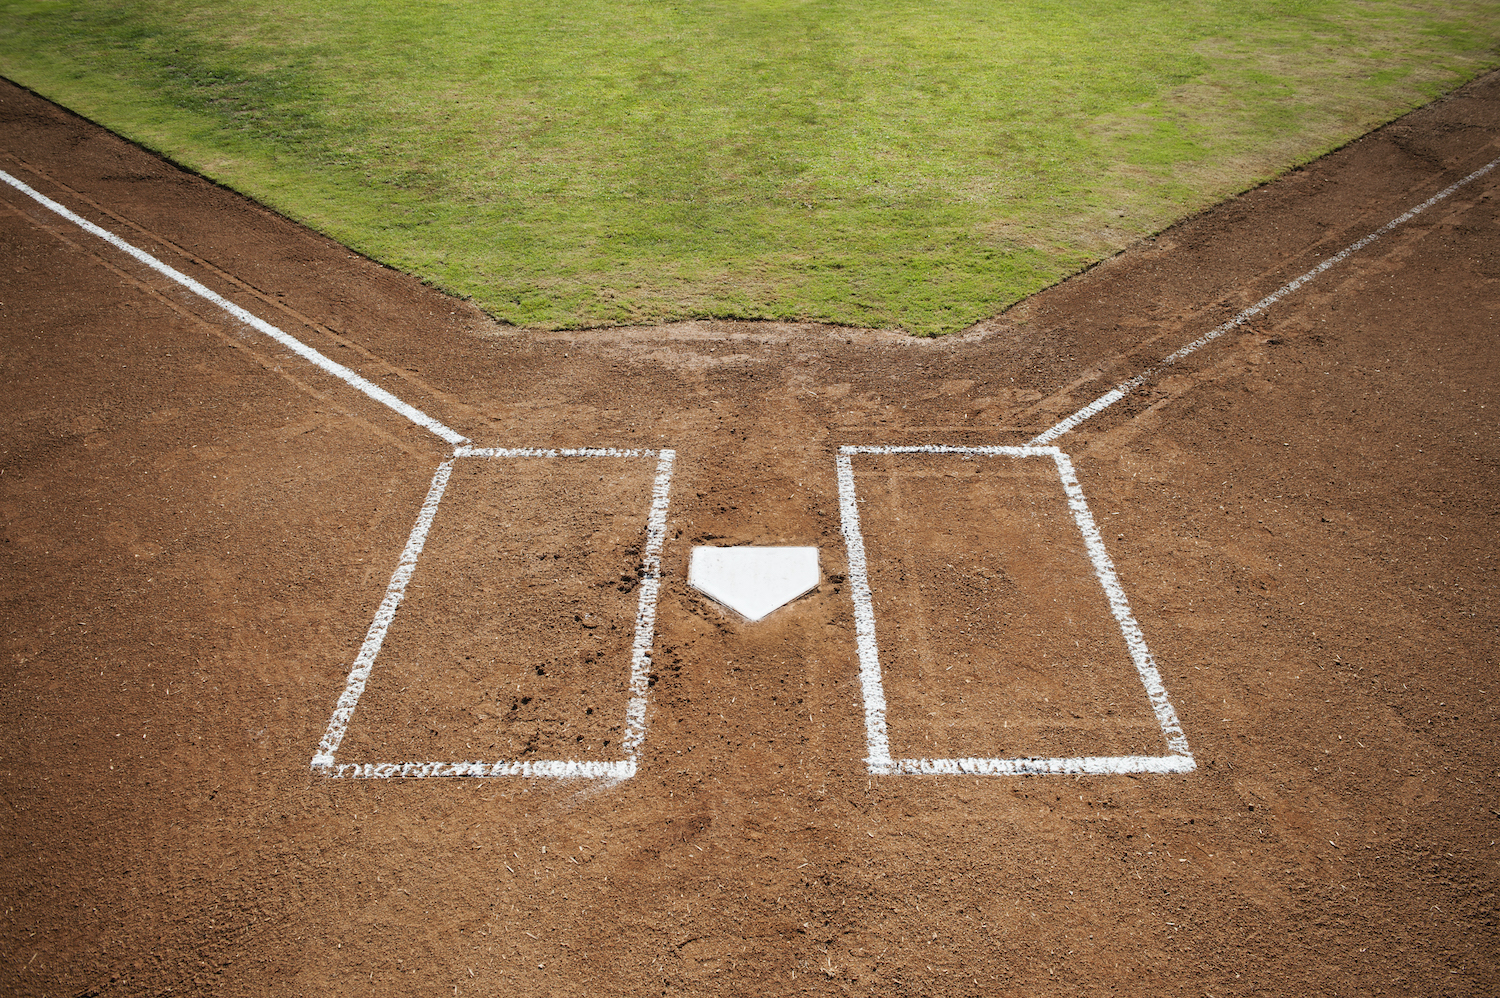 USA, California, Ladera Ranch, baseball diamond